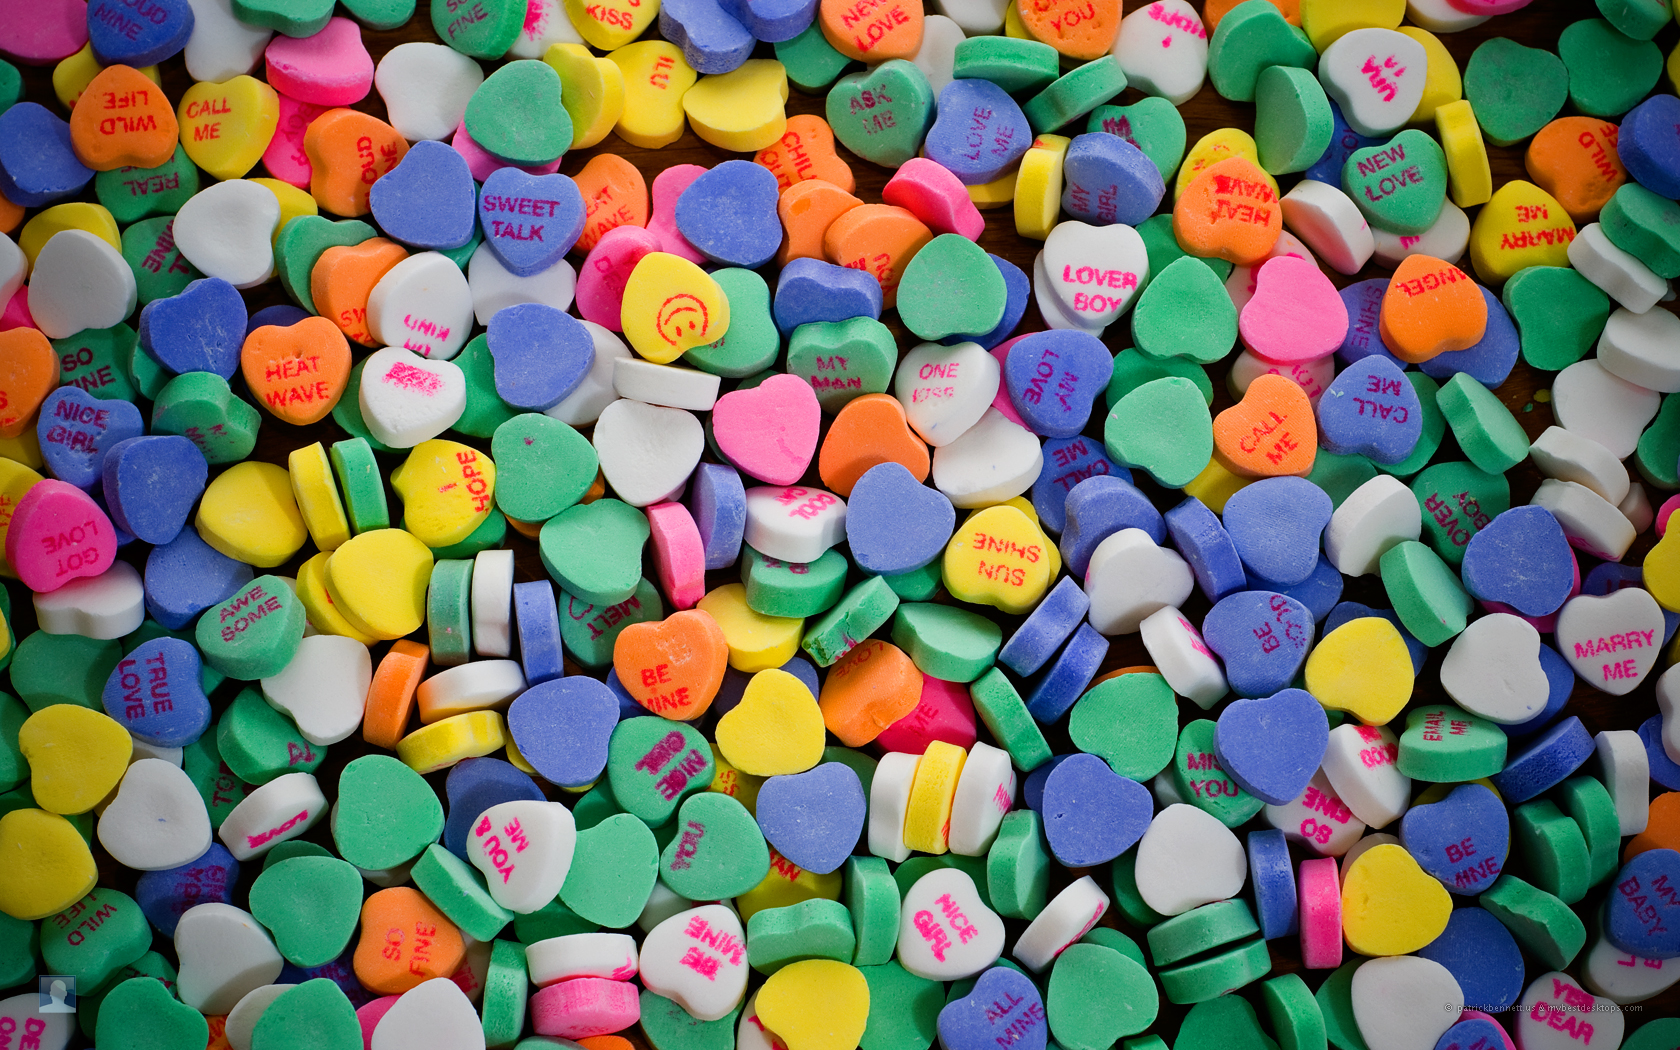 Candys Valentines Day Wallpaper | Background Wallpaper Gallery